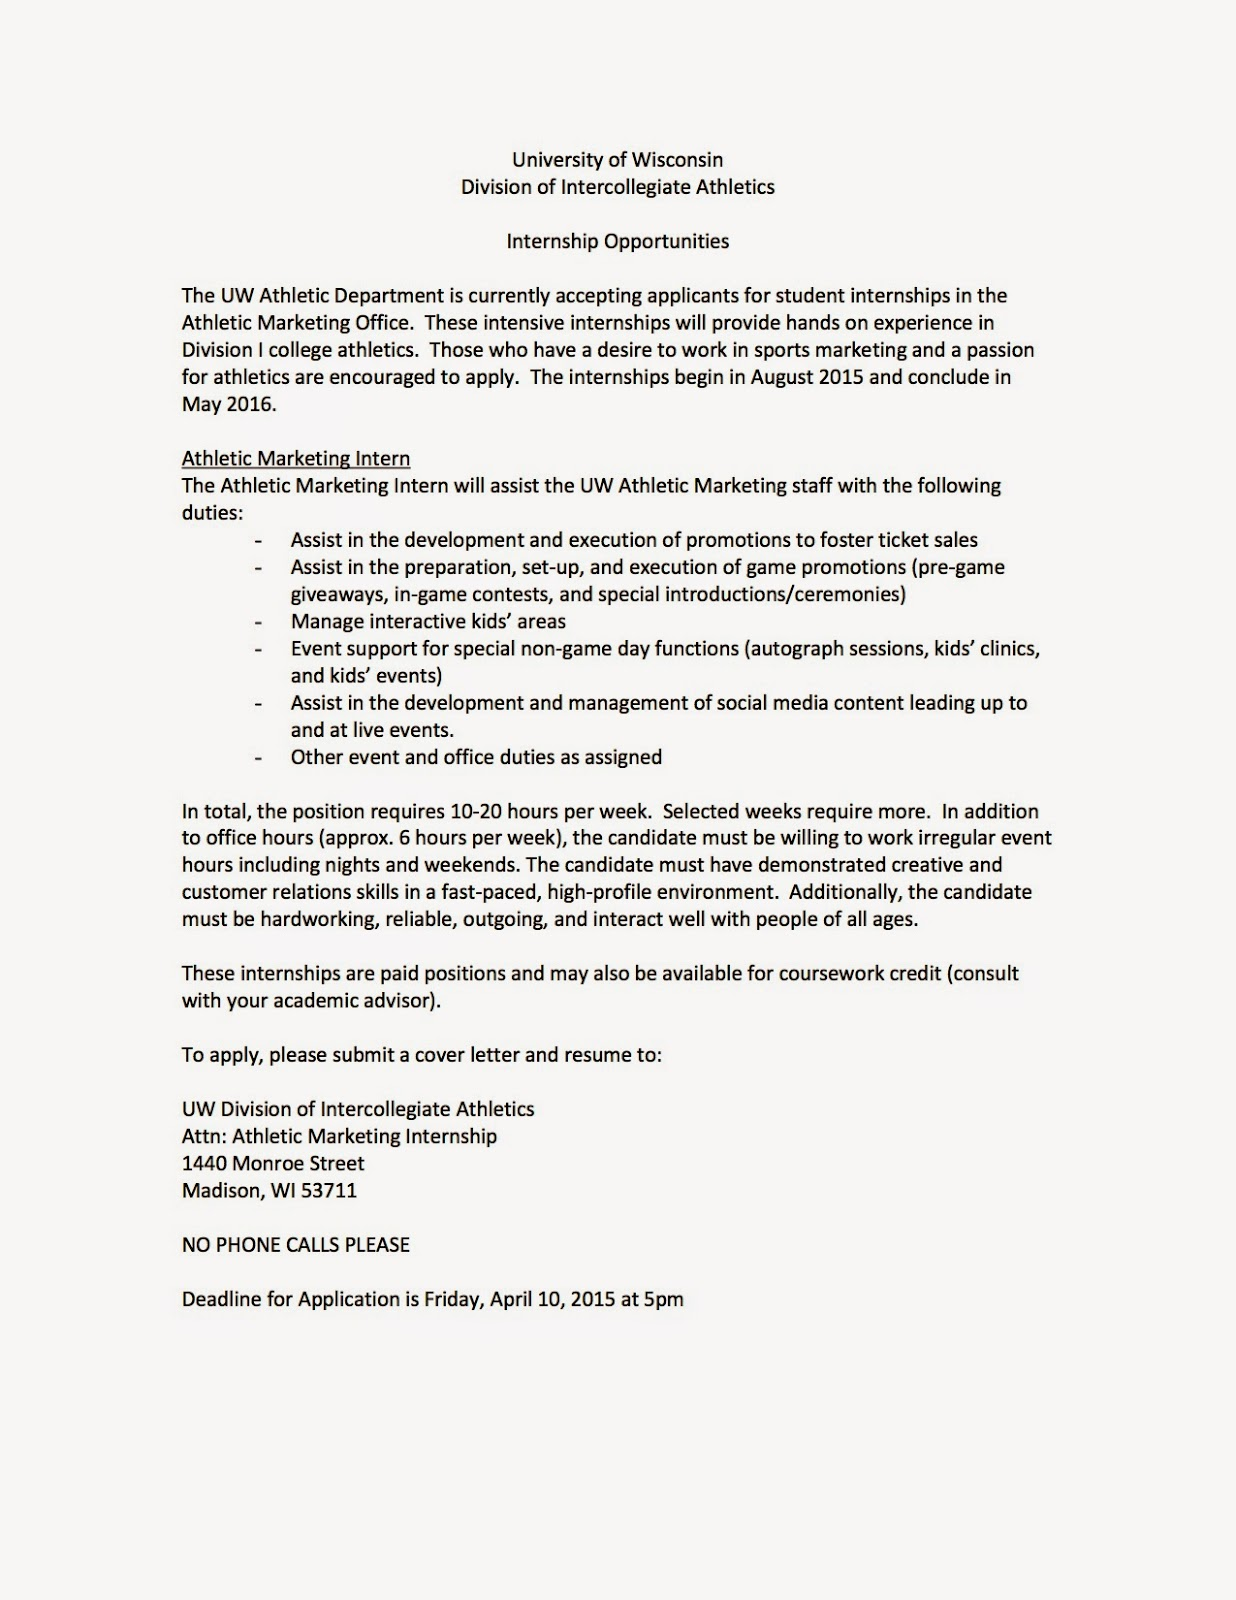 Designing Effective Writing Assignments | Harvey Mudd College resume ...